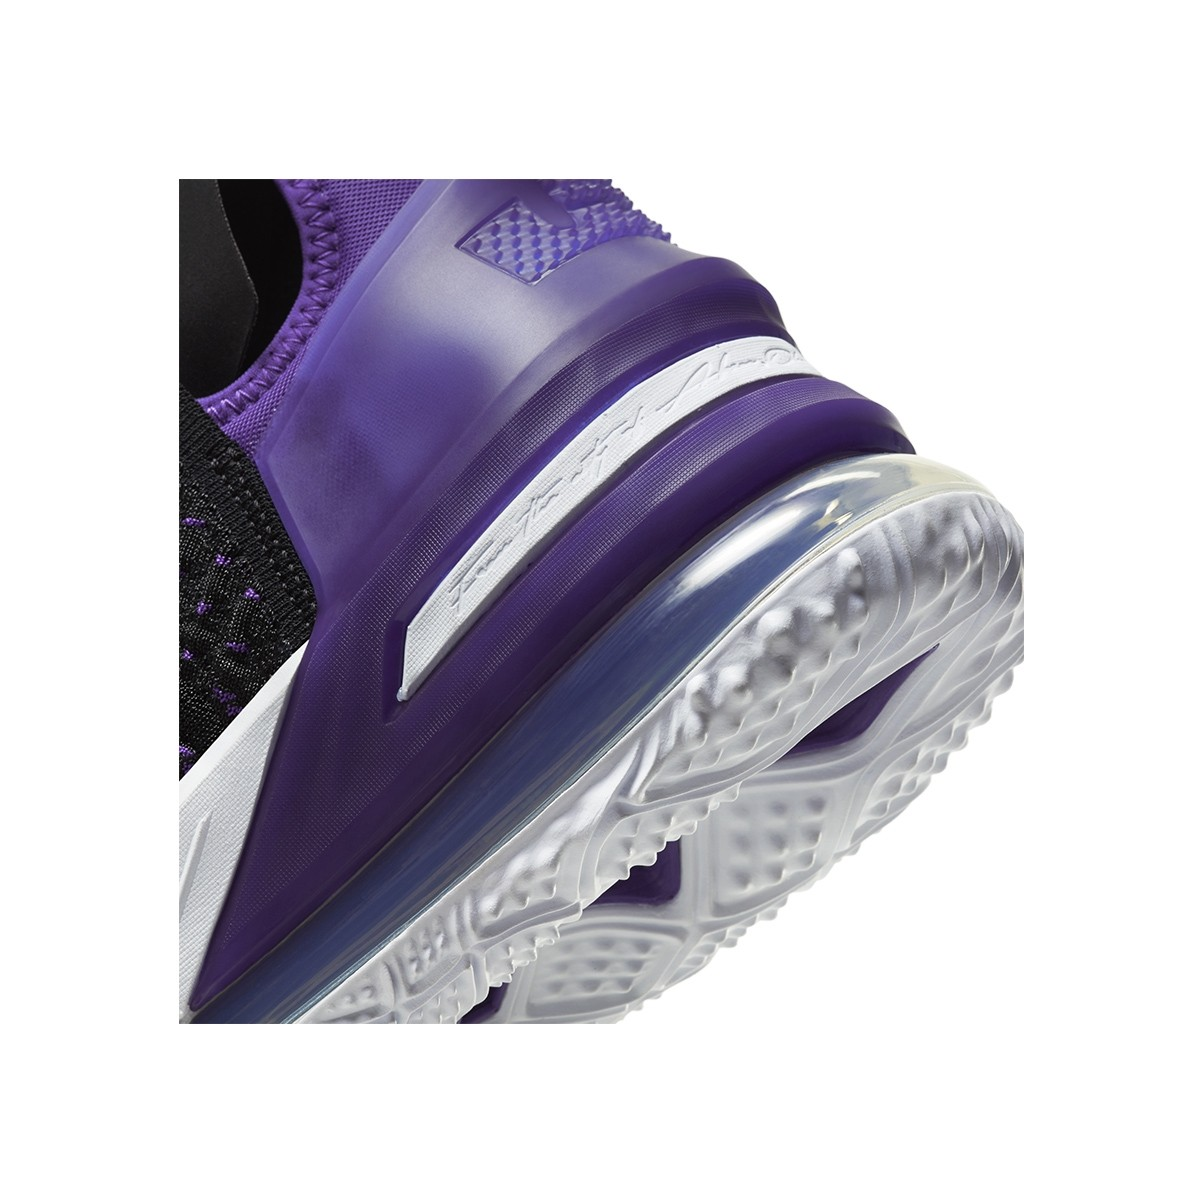 Nike LeBron 18 'Lakers'-CQ9283-004